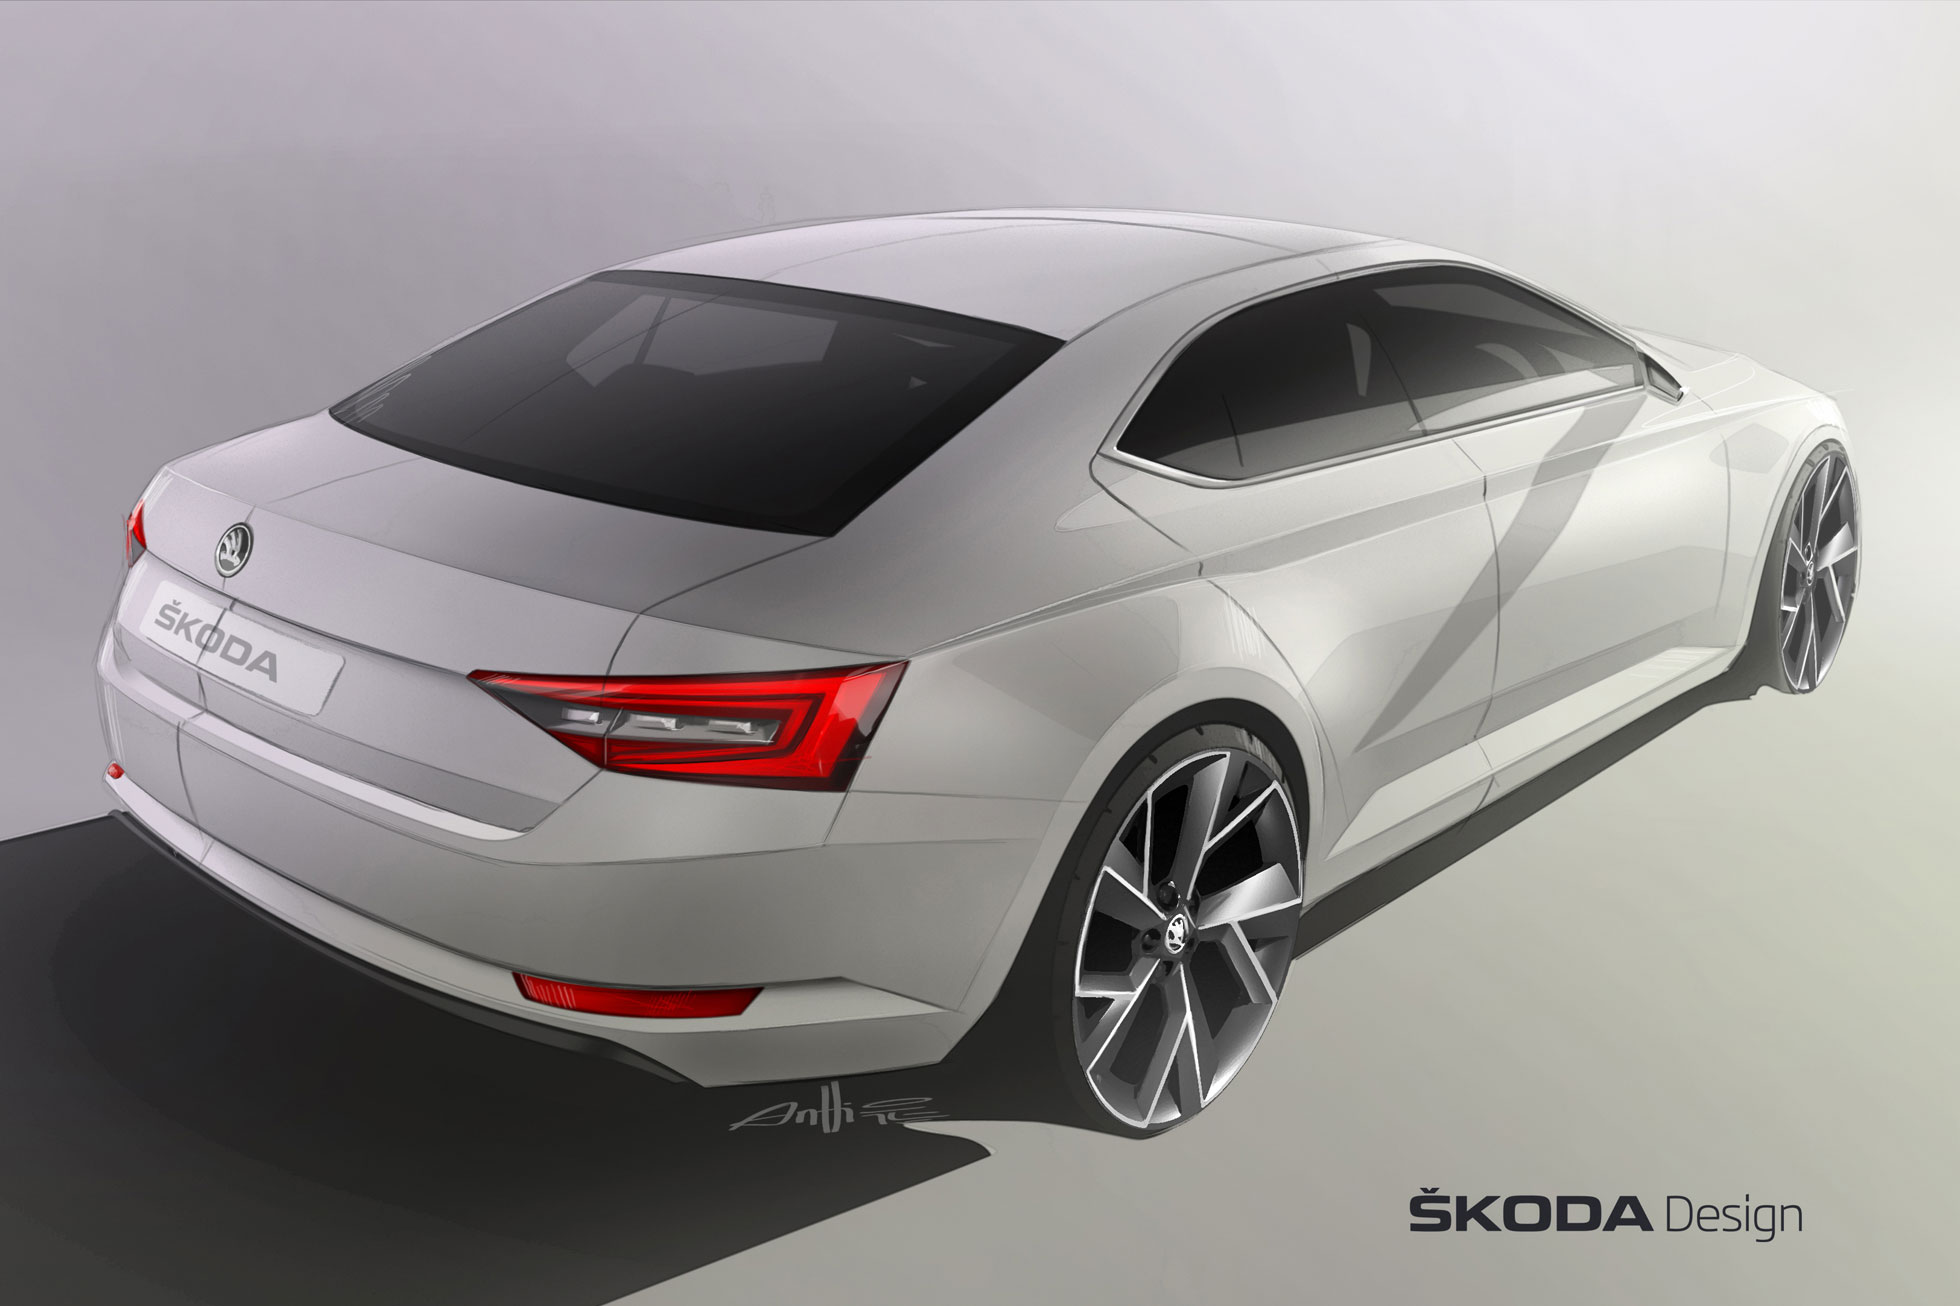 2015 Skoda Superb teased ahead of Geneva Motor Show debut